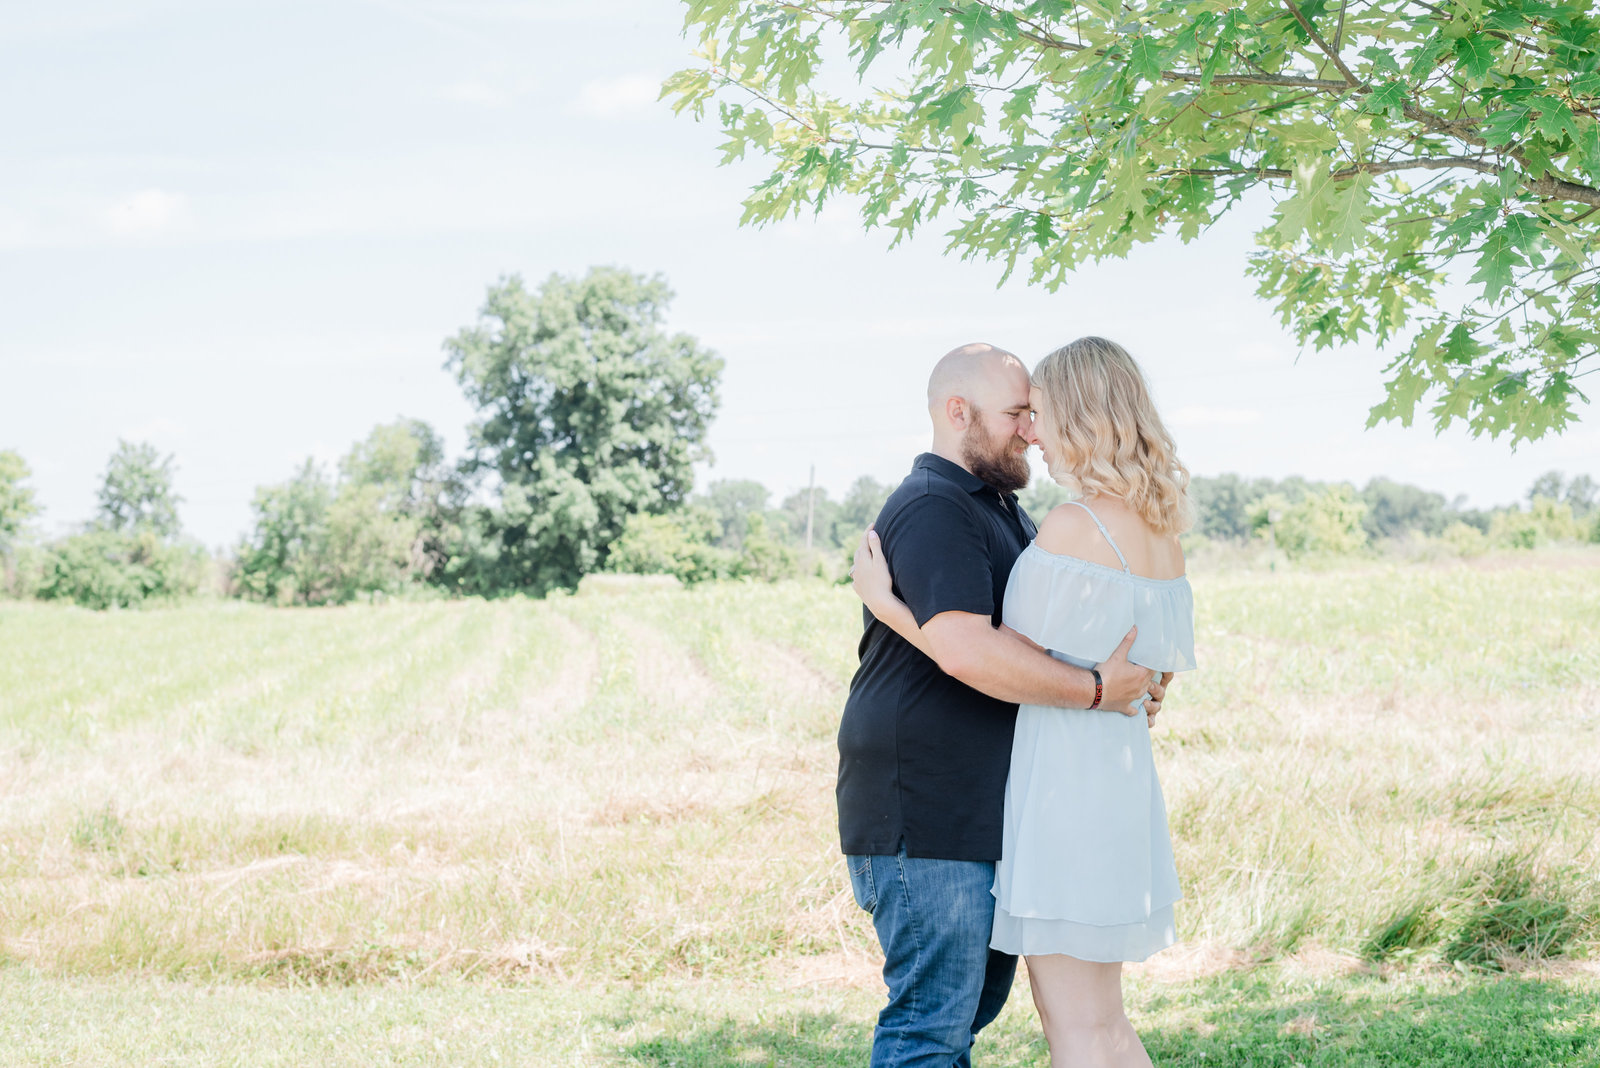 EngagementPictures-79